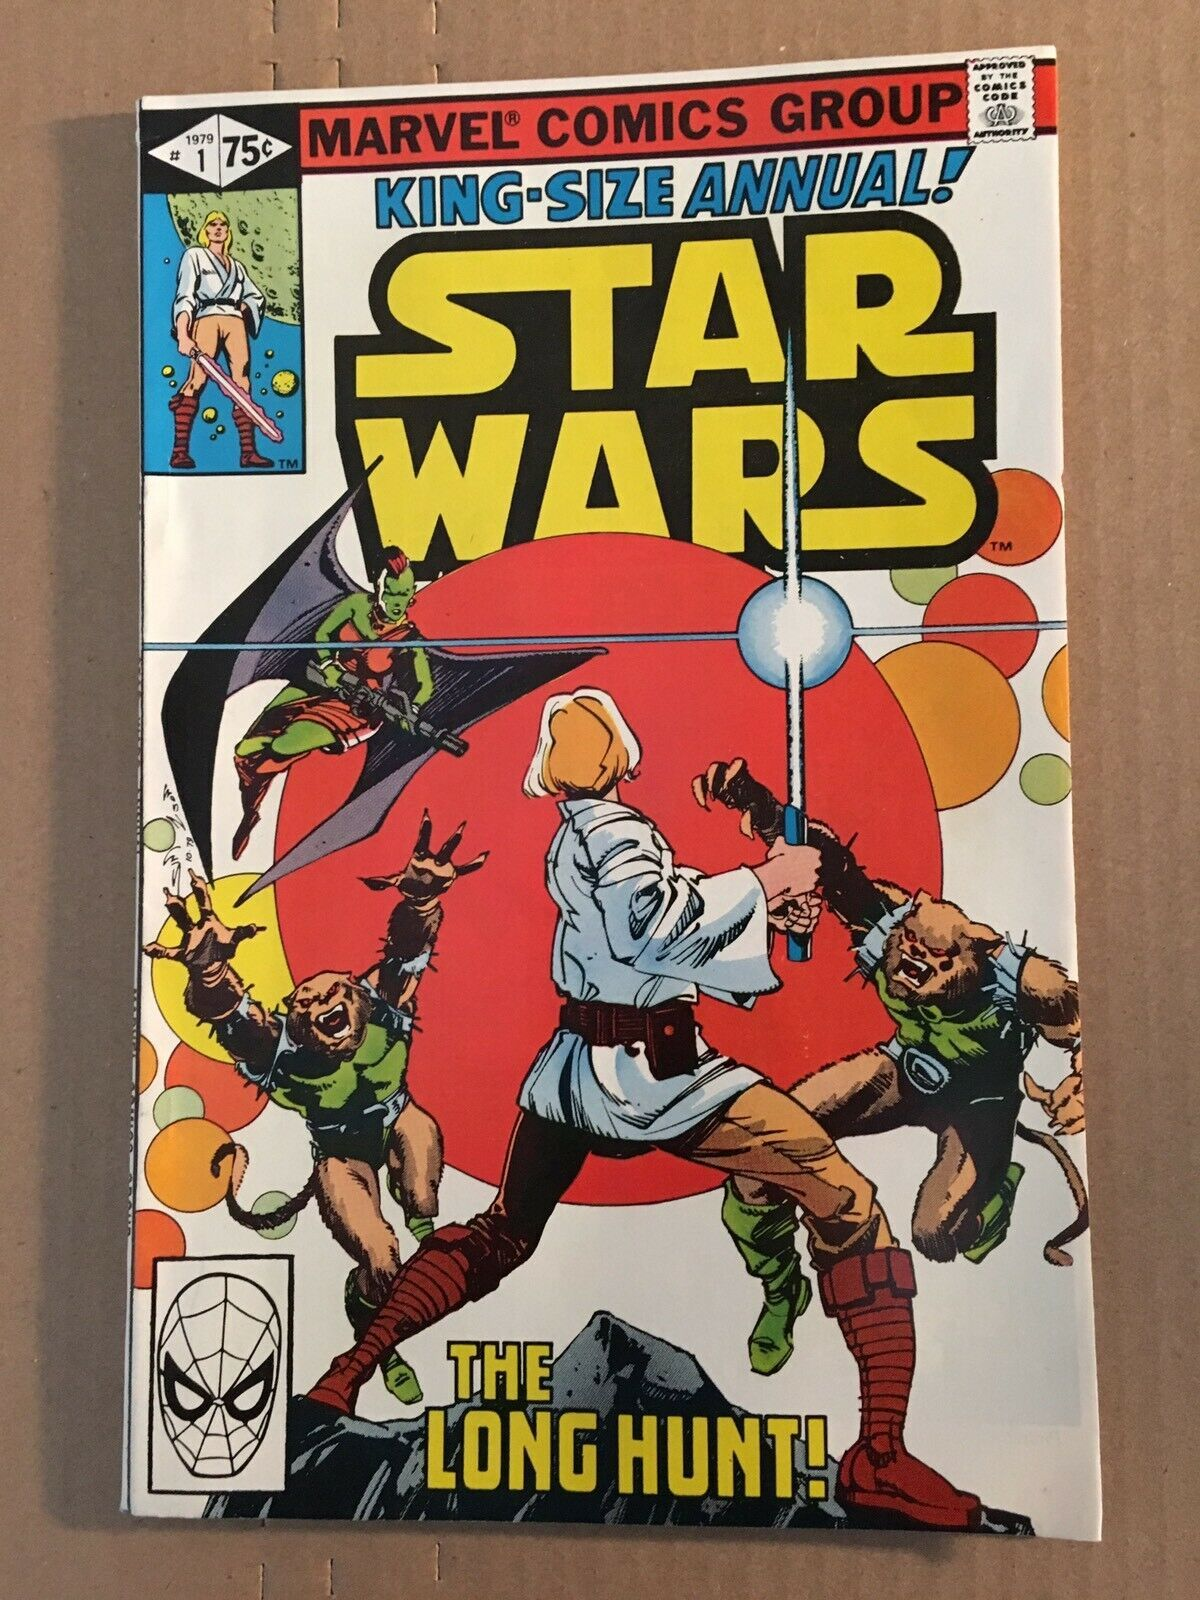 Star Wars #1 1979 Marvel Comic Book VF Condition King Size Annual